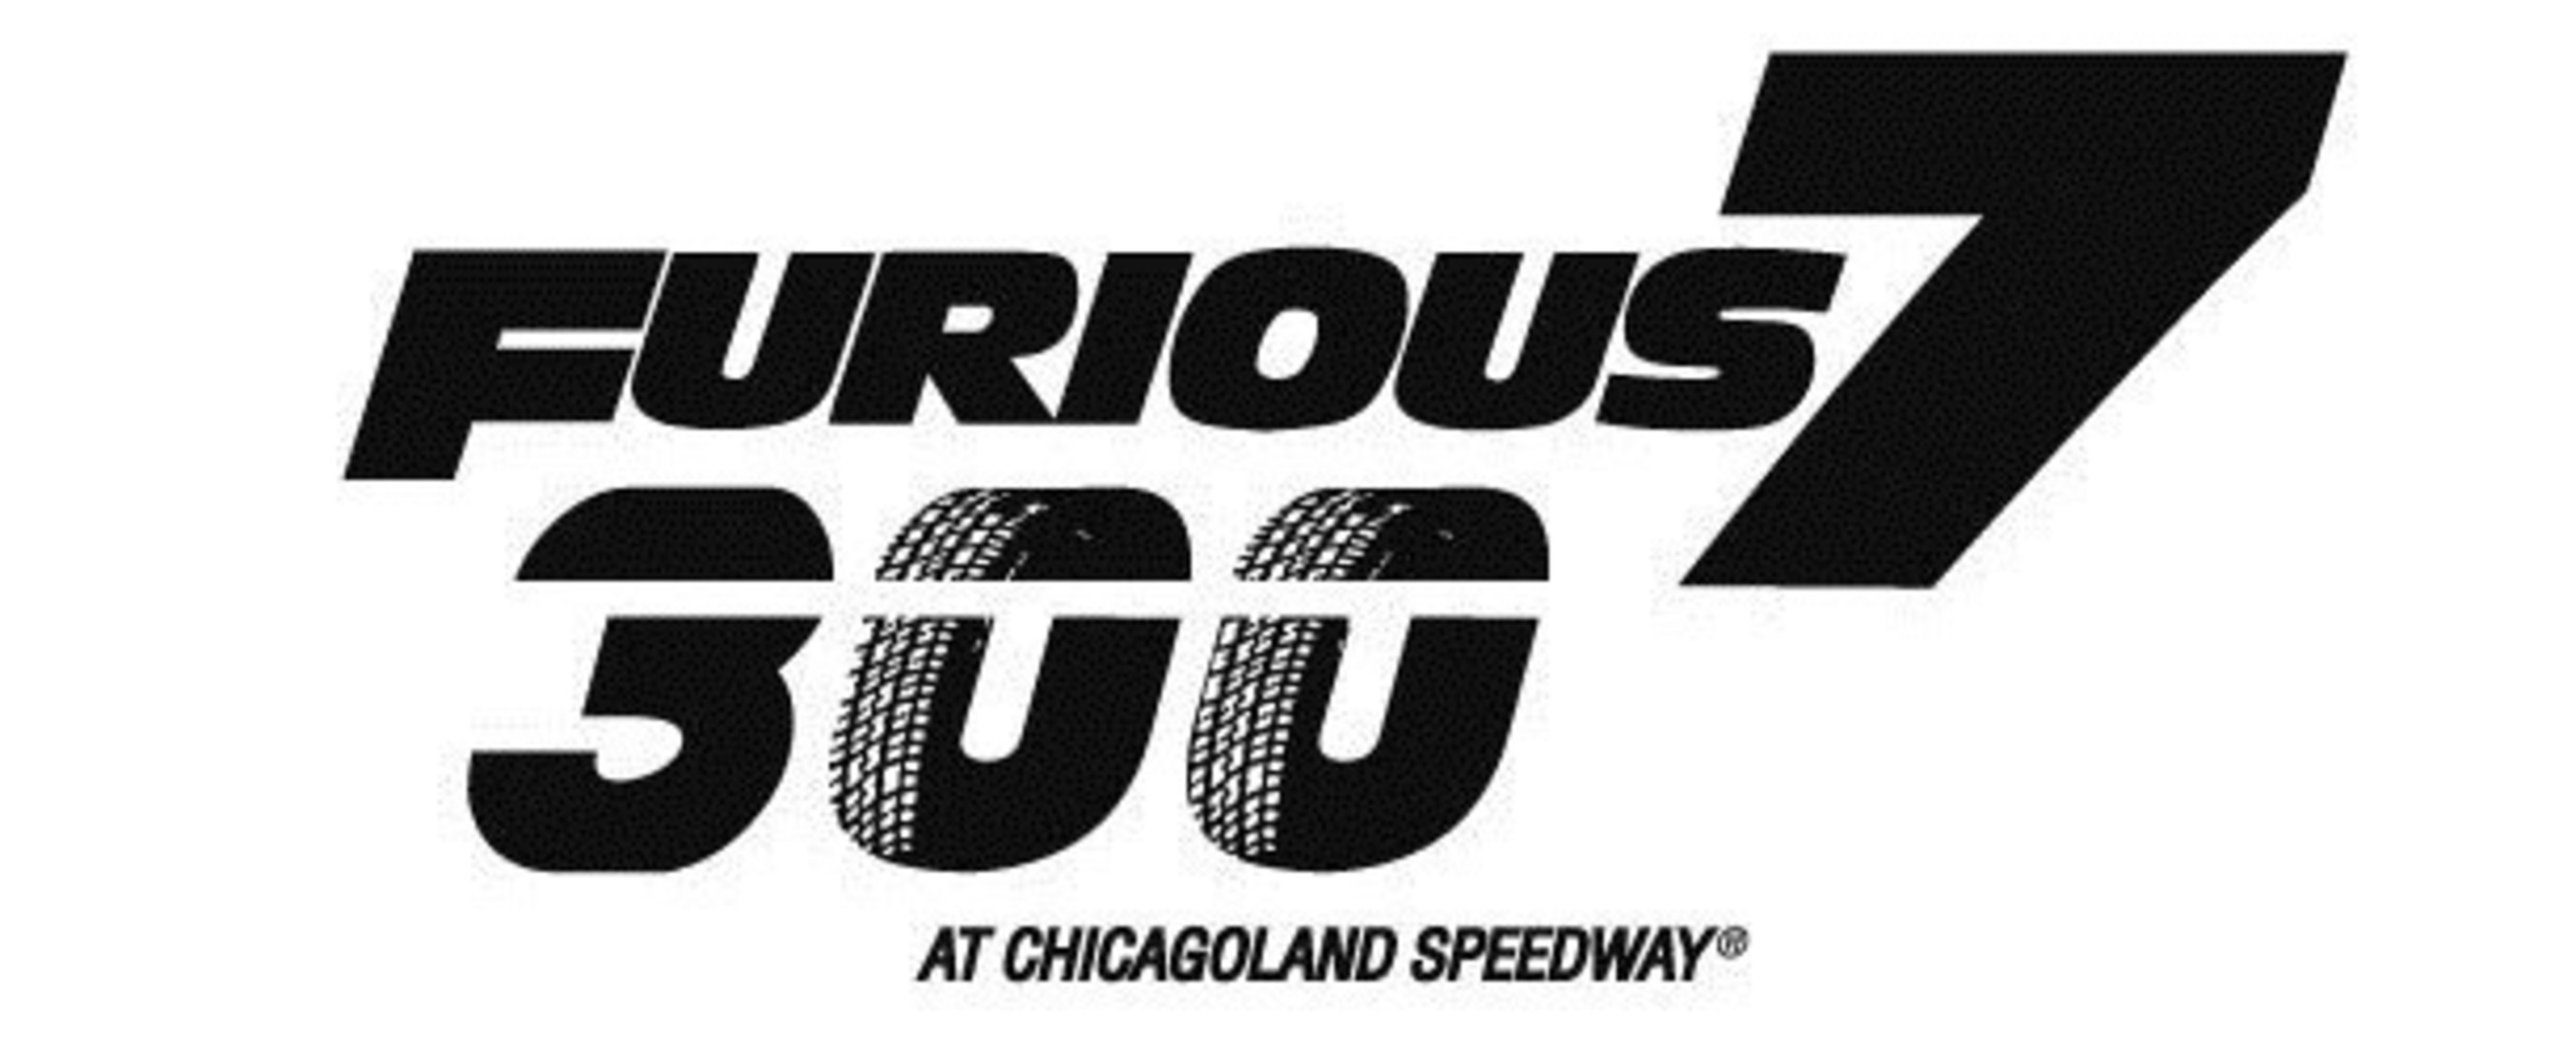 'Furious 7' To Sponsor Chicagoland Speedway XFINITY Series Race